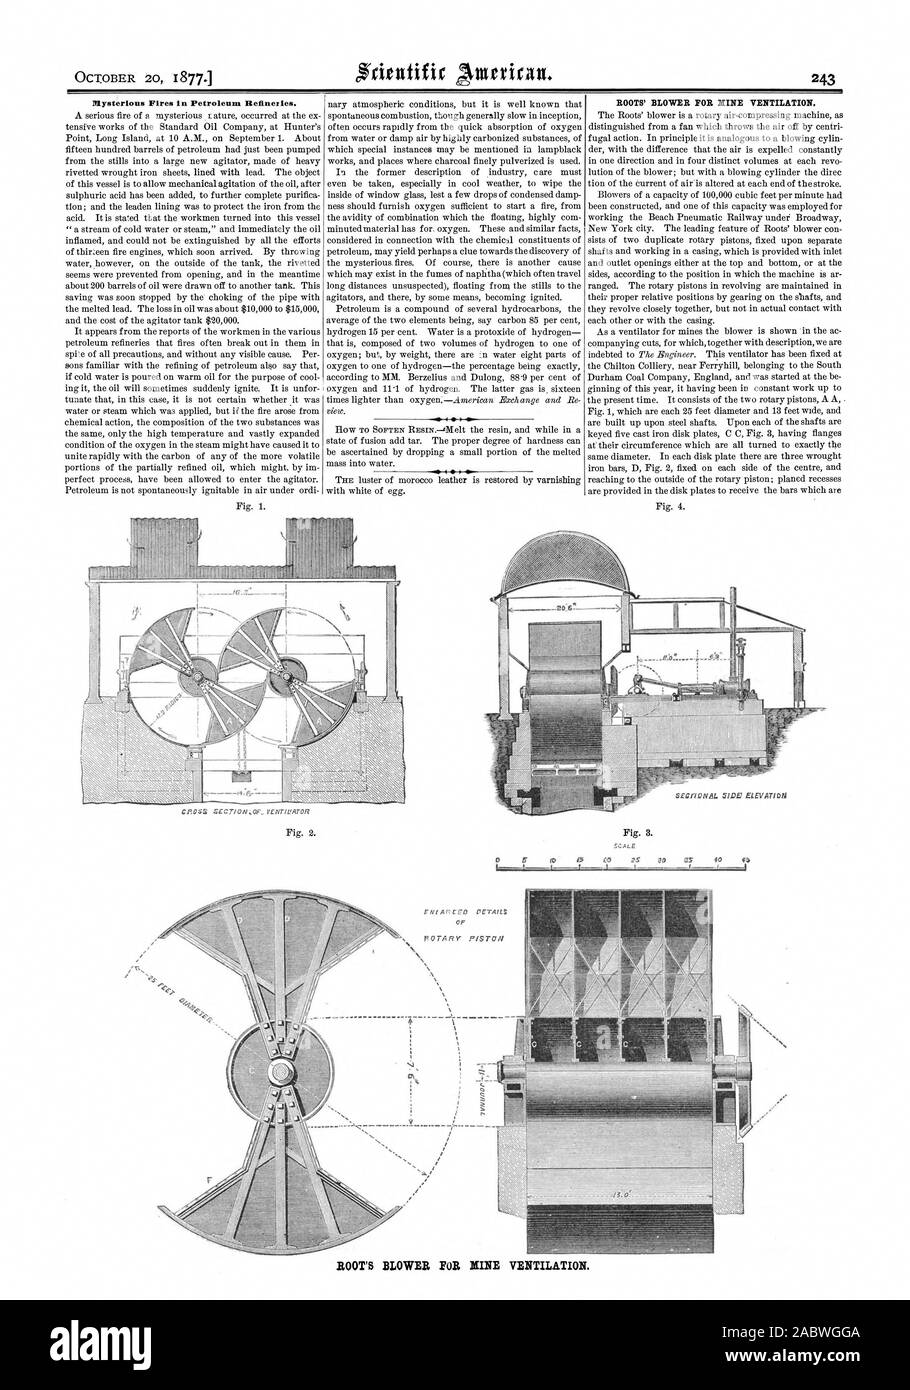 Mysterious Fires in Petroleum Refineries. ROOTS' BLOWER FOR NINE VENTILATION. ROOT'S BLOWER FOR MINE VENTILATION., scientific american, 1877-10-20 Stock Photo